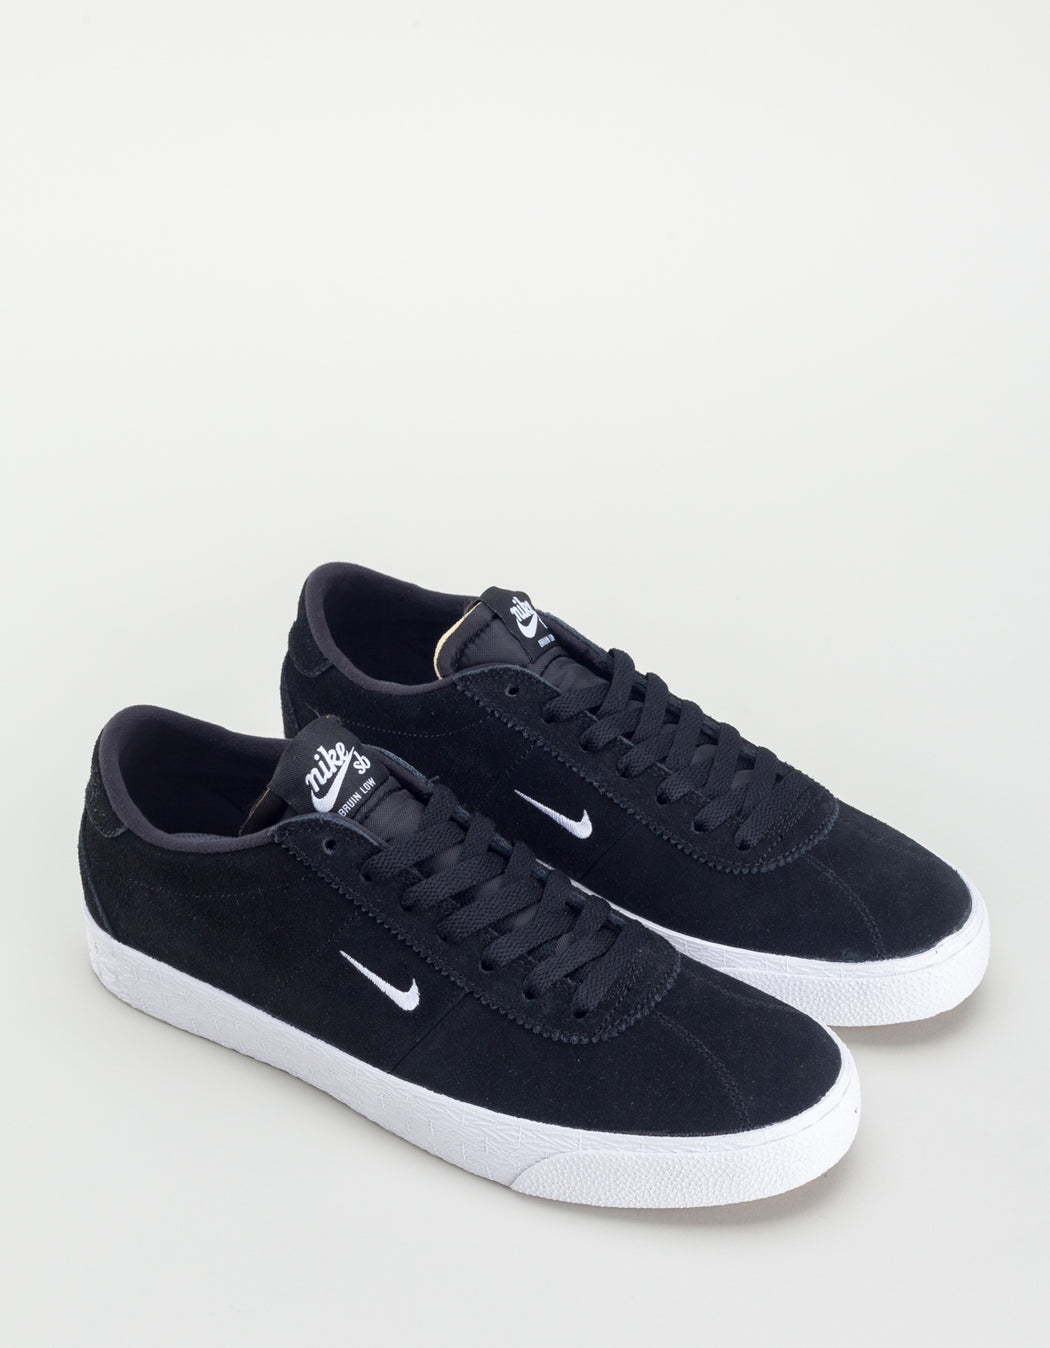 authorized site discount lowest price Nike SB Zoom Bruin Ultra Black White